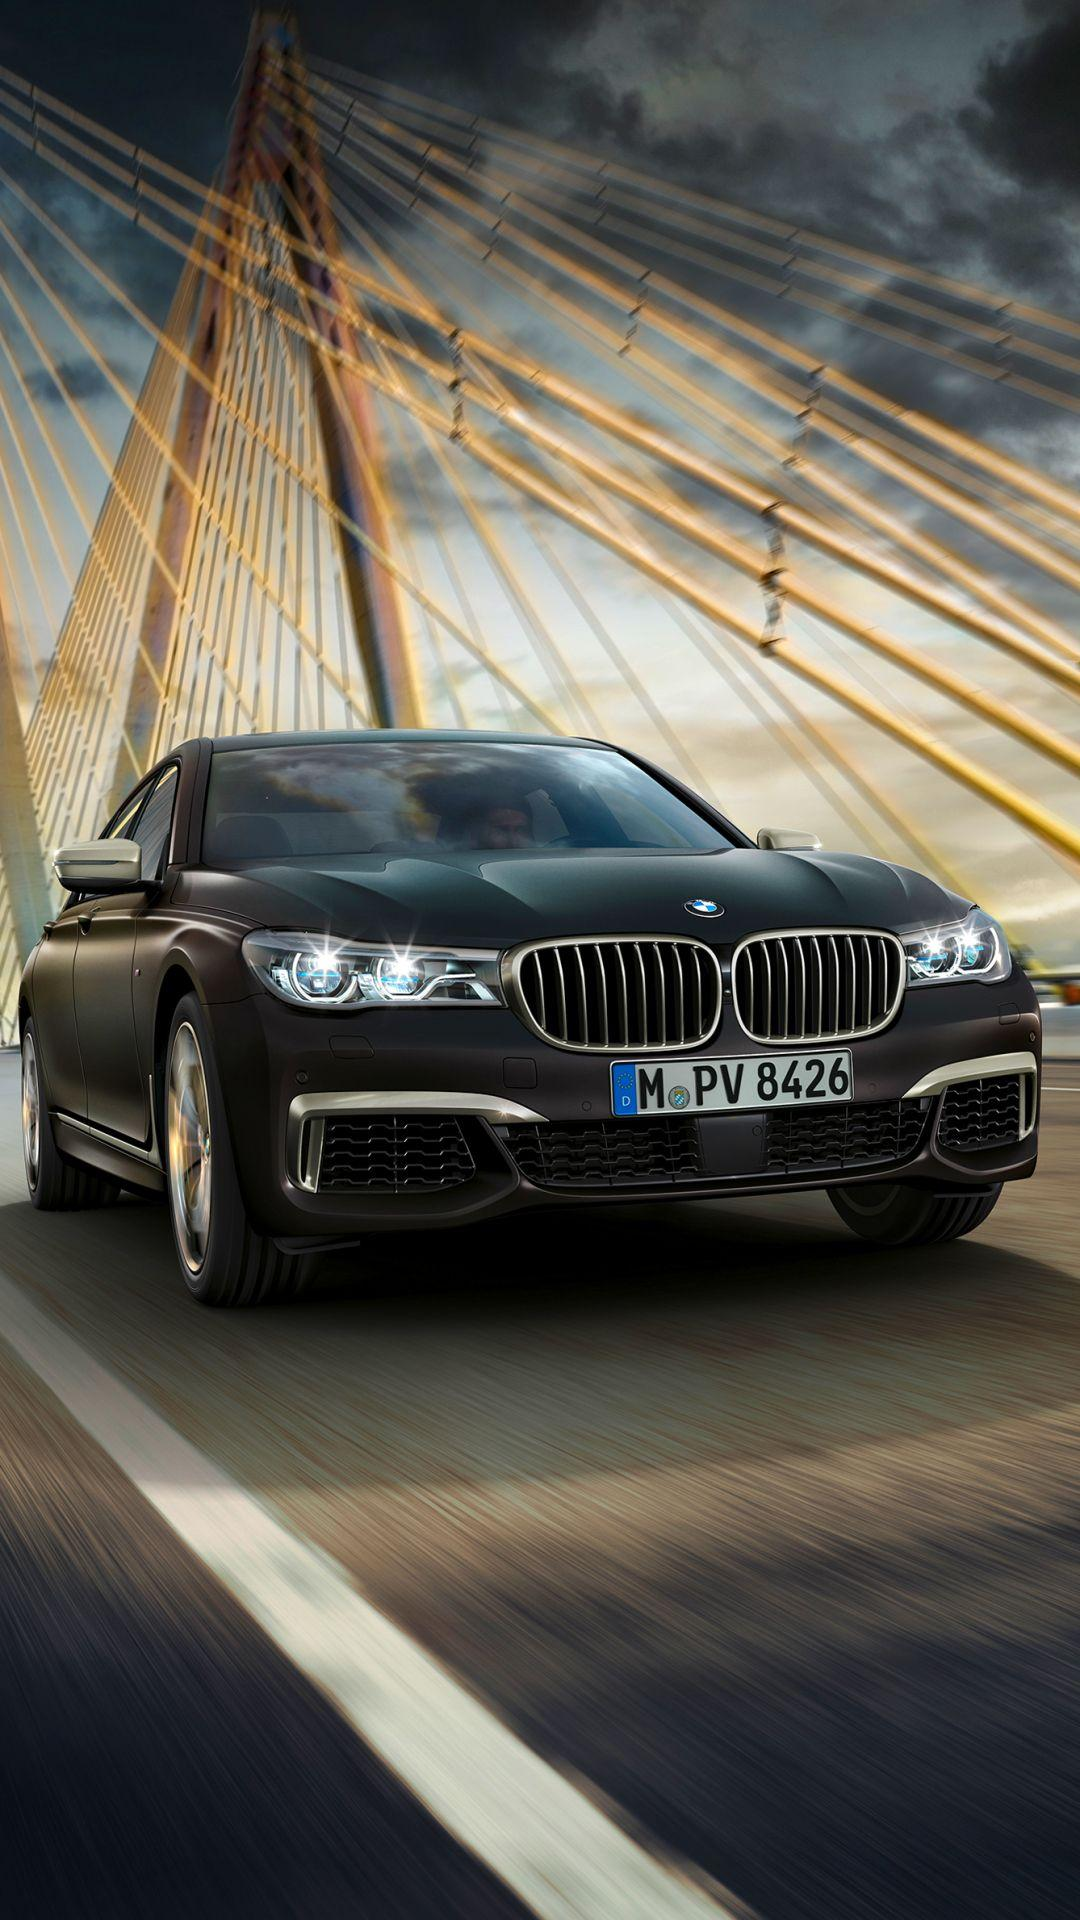 BMW 7 Series Wallpapers